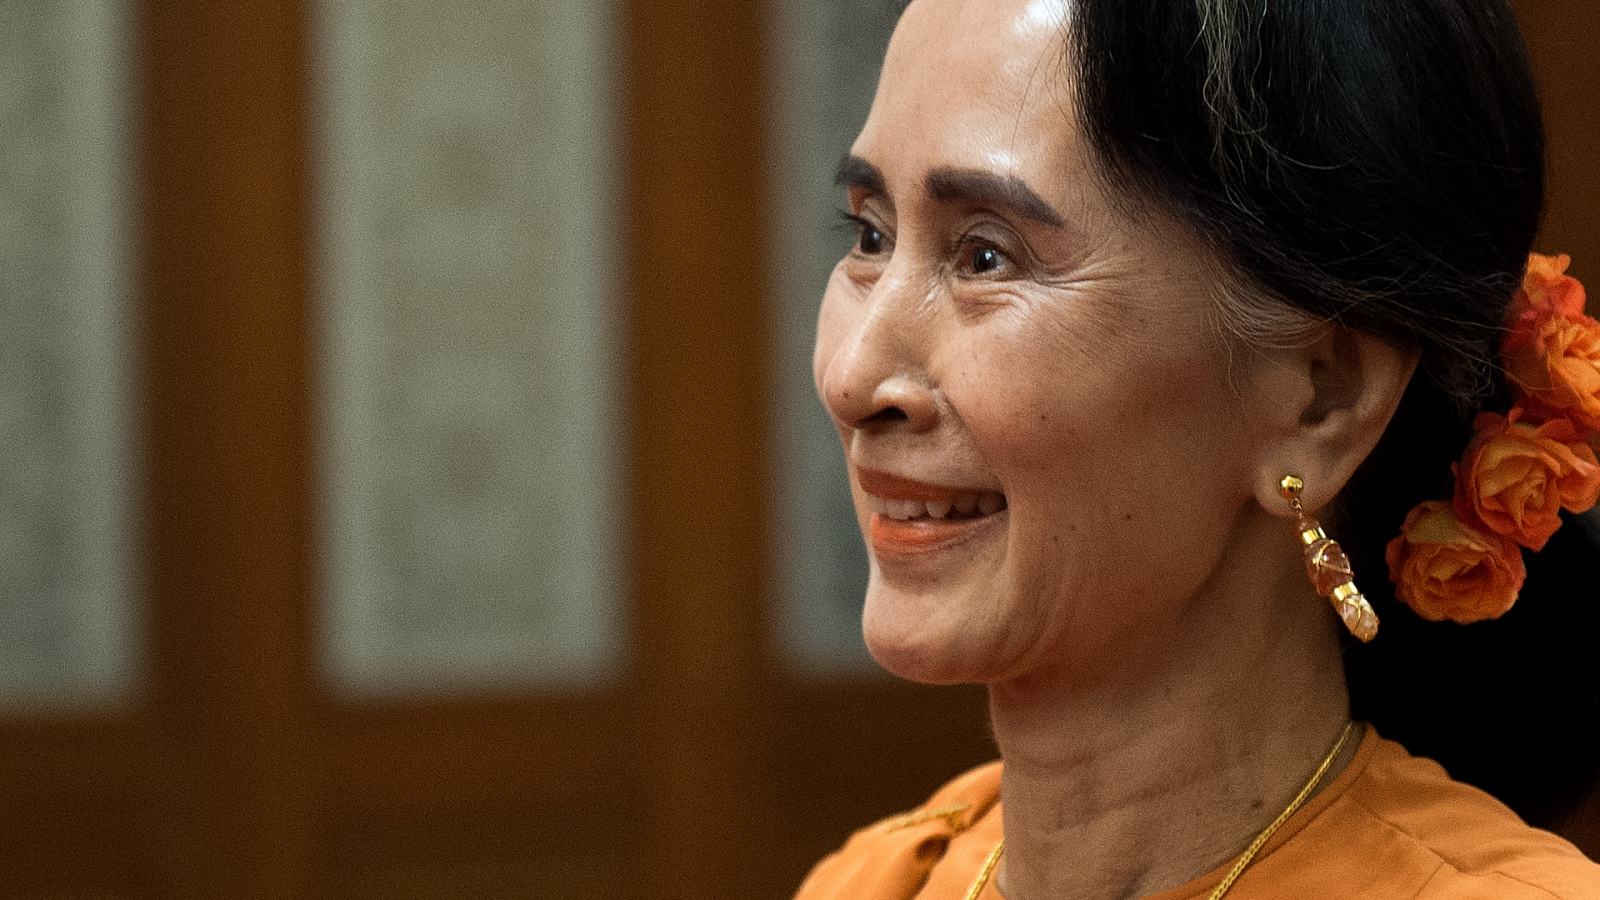 Why are people signing a petition calling for Aung San Suu's Kyi's Nobel Peace Prize to be revoked?